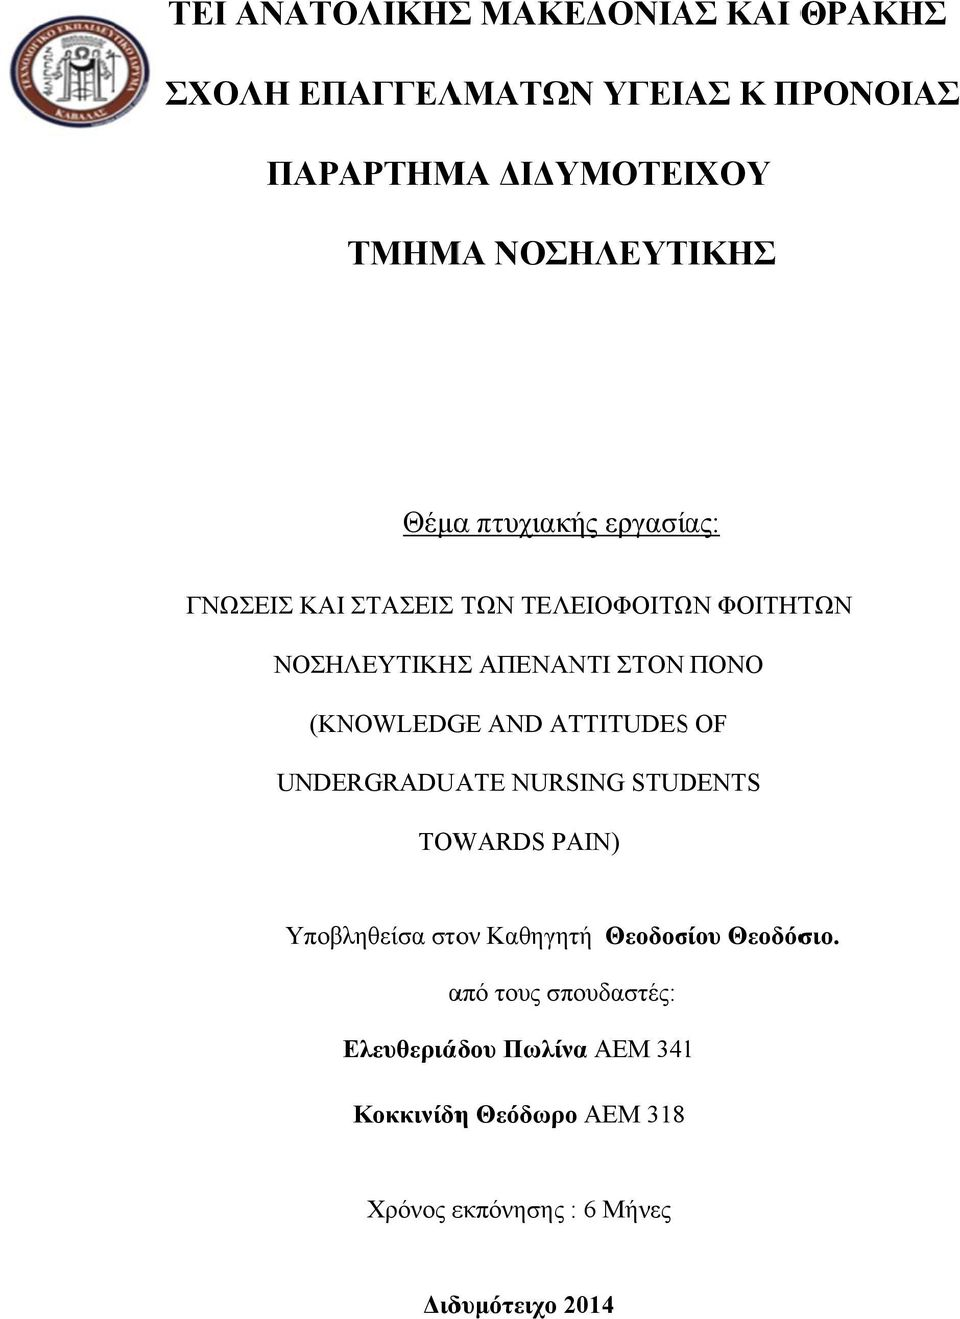 (KNOWLEDGE AND ATTITUDESS OF UNDERGRADUATE NURSING STUDENTS TOWARDS PAIN) Υποβληθείσα στον Καθηγητή Θεοδοσίου